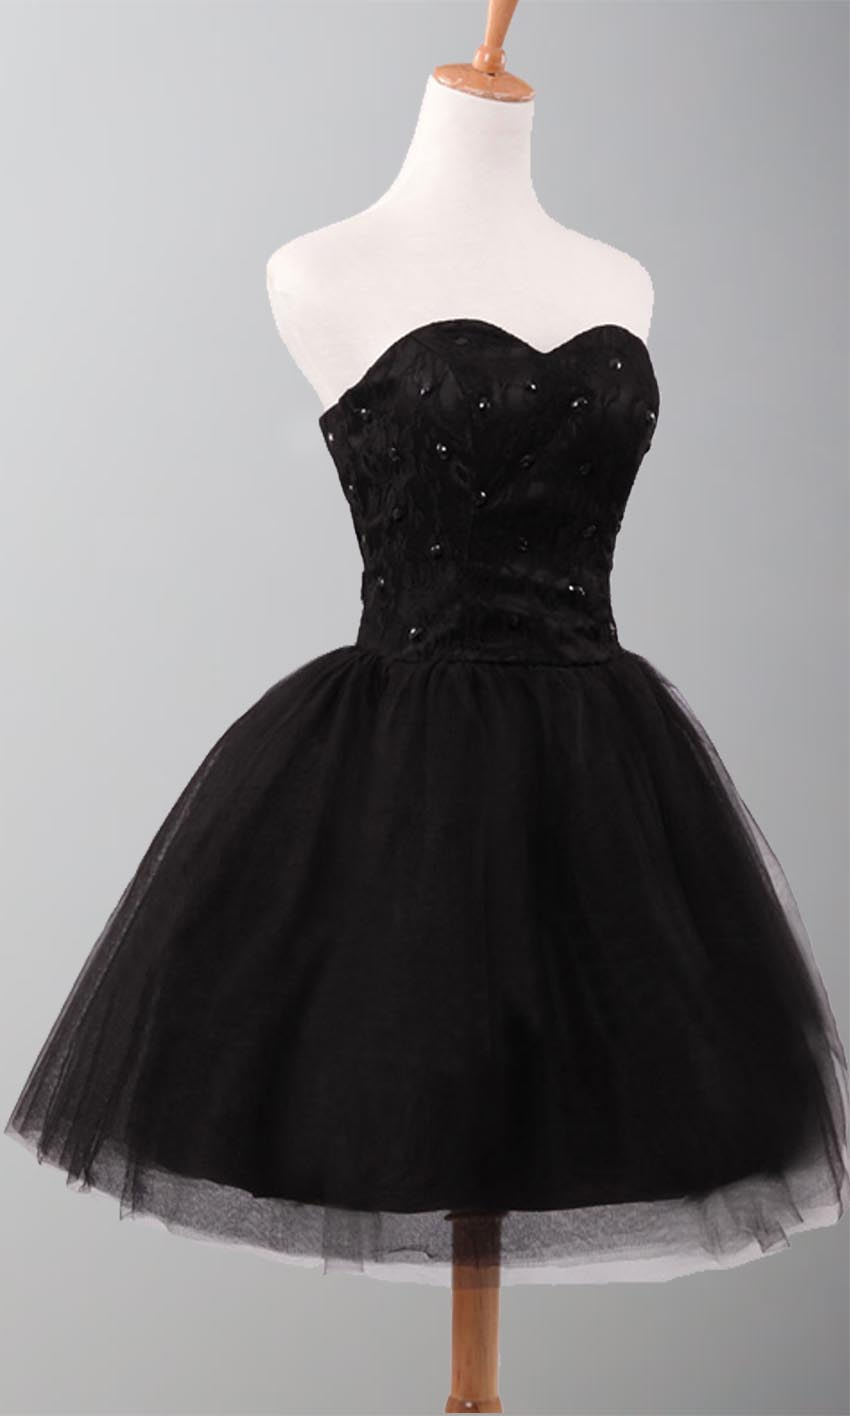 Little Black Tulle Strapless Party Dress KSP121 [KSP121] - £91.00 : Cheap Prom Dresses Uk, Bridesmaid Dresses, 2014 Prom & Evening Dresses, Look for cheap elegant prom dresses 2014, cocktail gowns, or dresses for special occasions? kissprom.co.uk offers various bridesmaid dresses, evening dress, free shipping to UK etc.